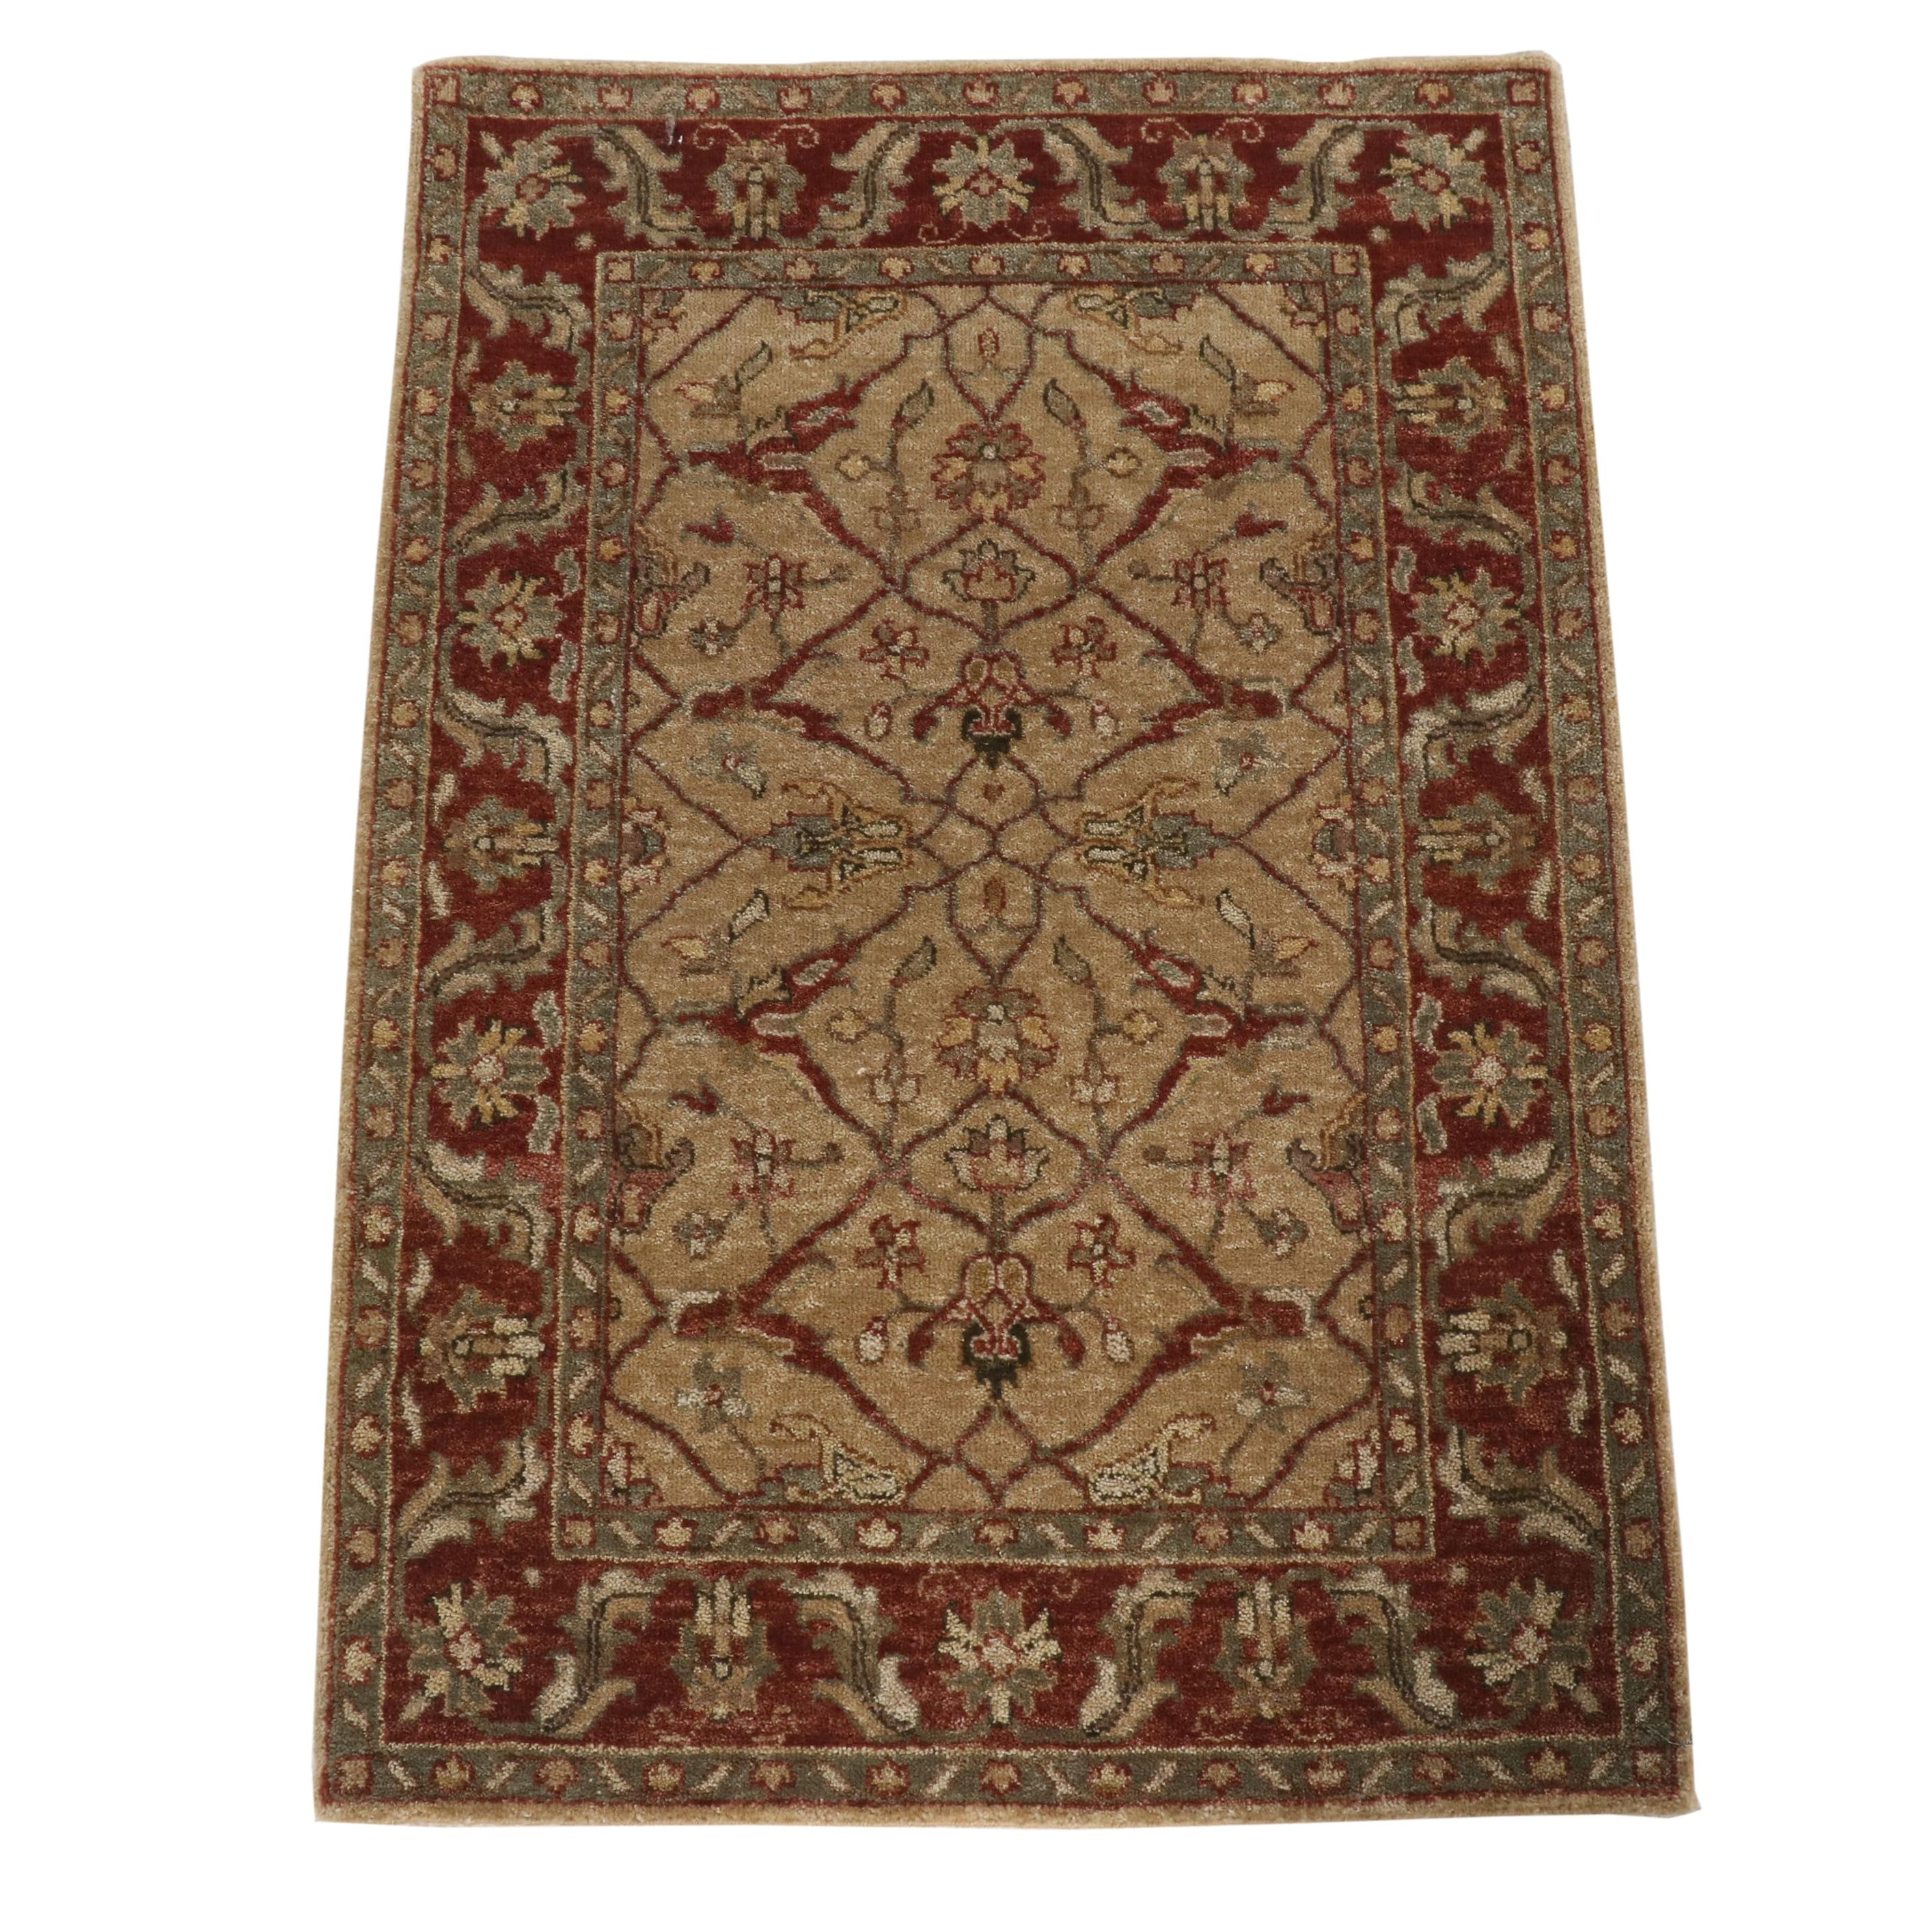 Hand-Knotted Indian Peshawar Style Wool Rug